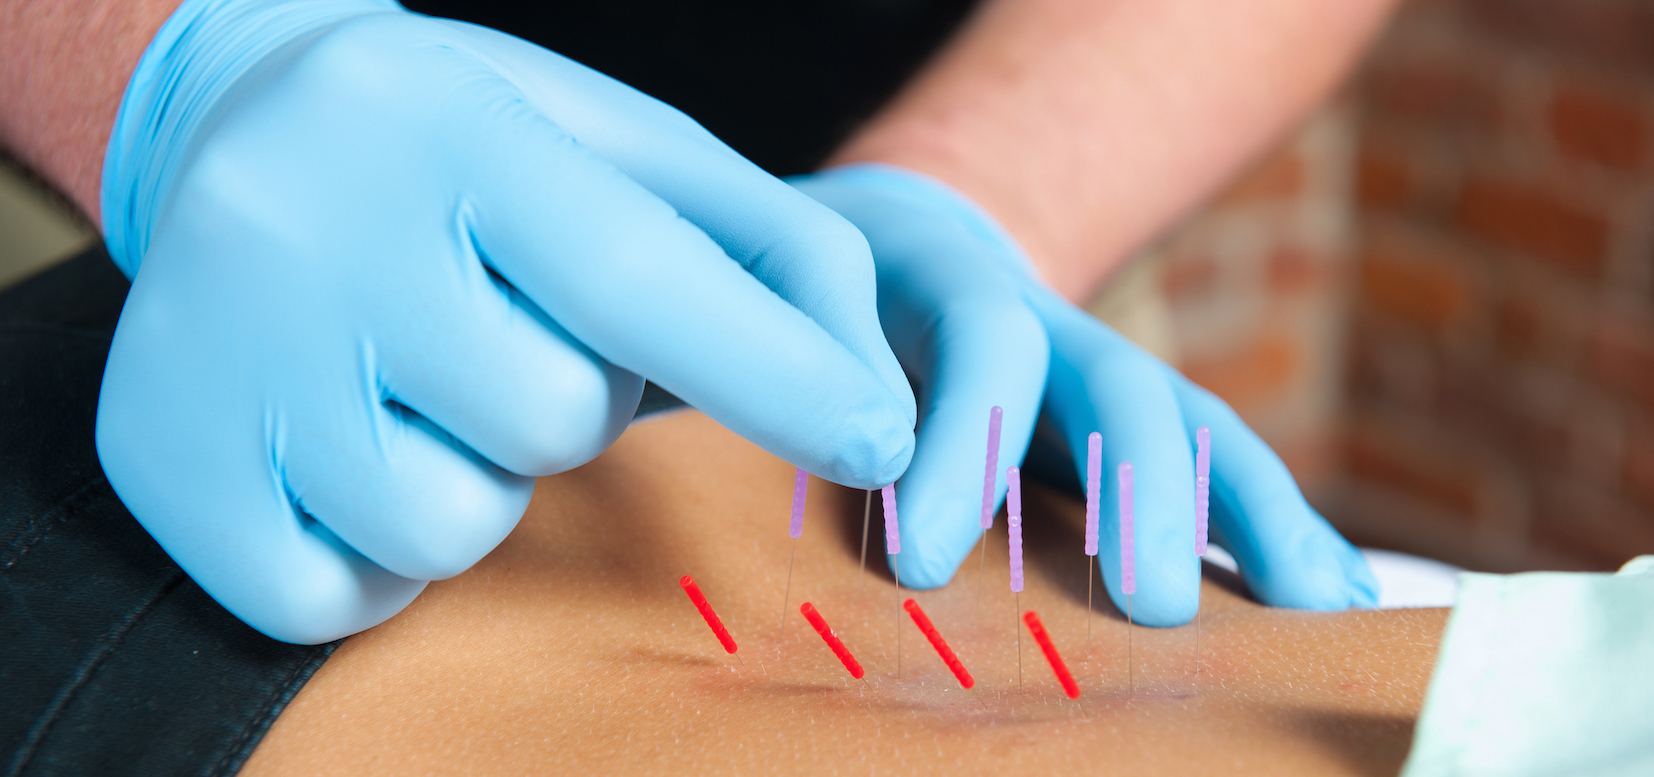 What Makes Everyone Go Crazy for Dry Needling